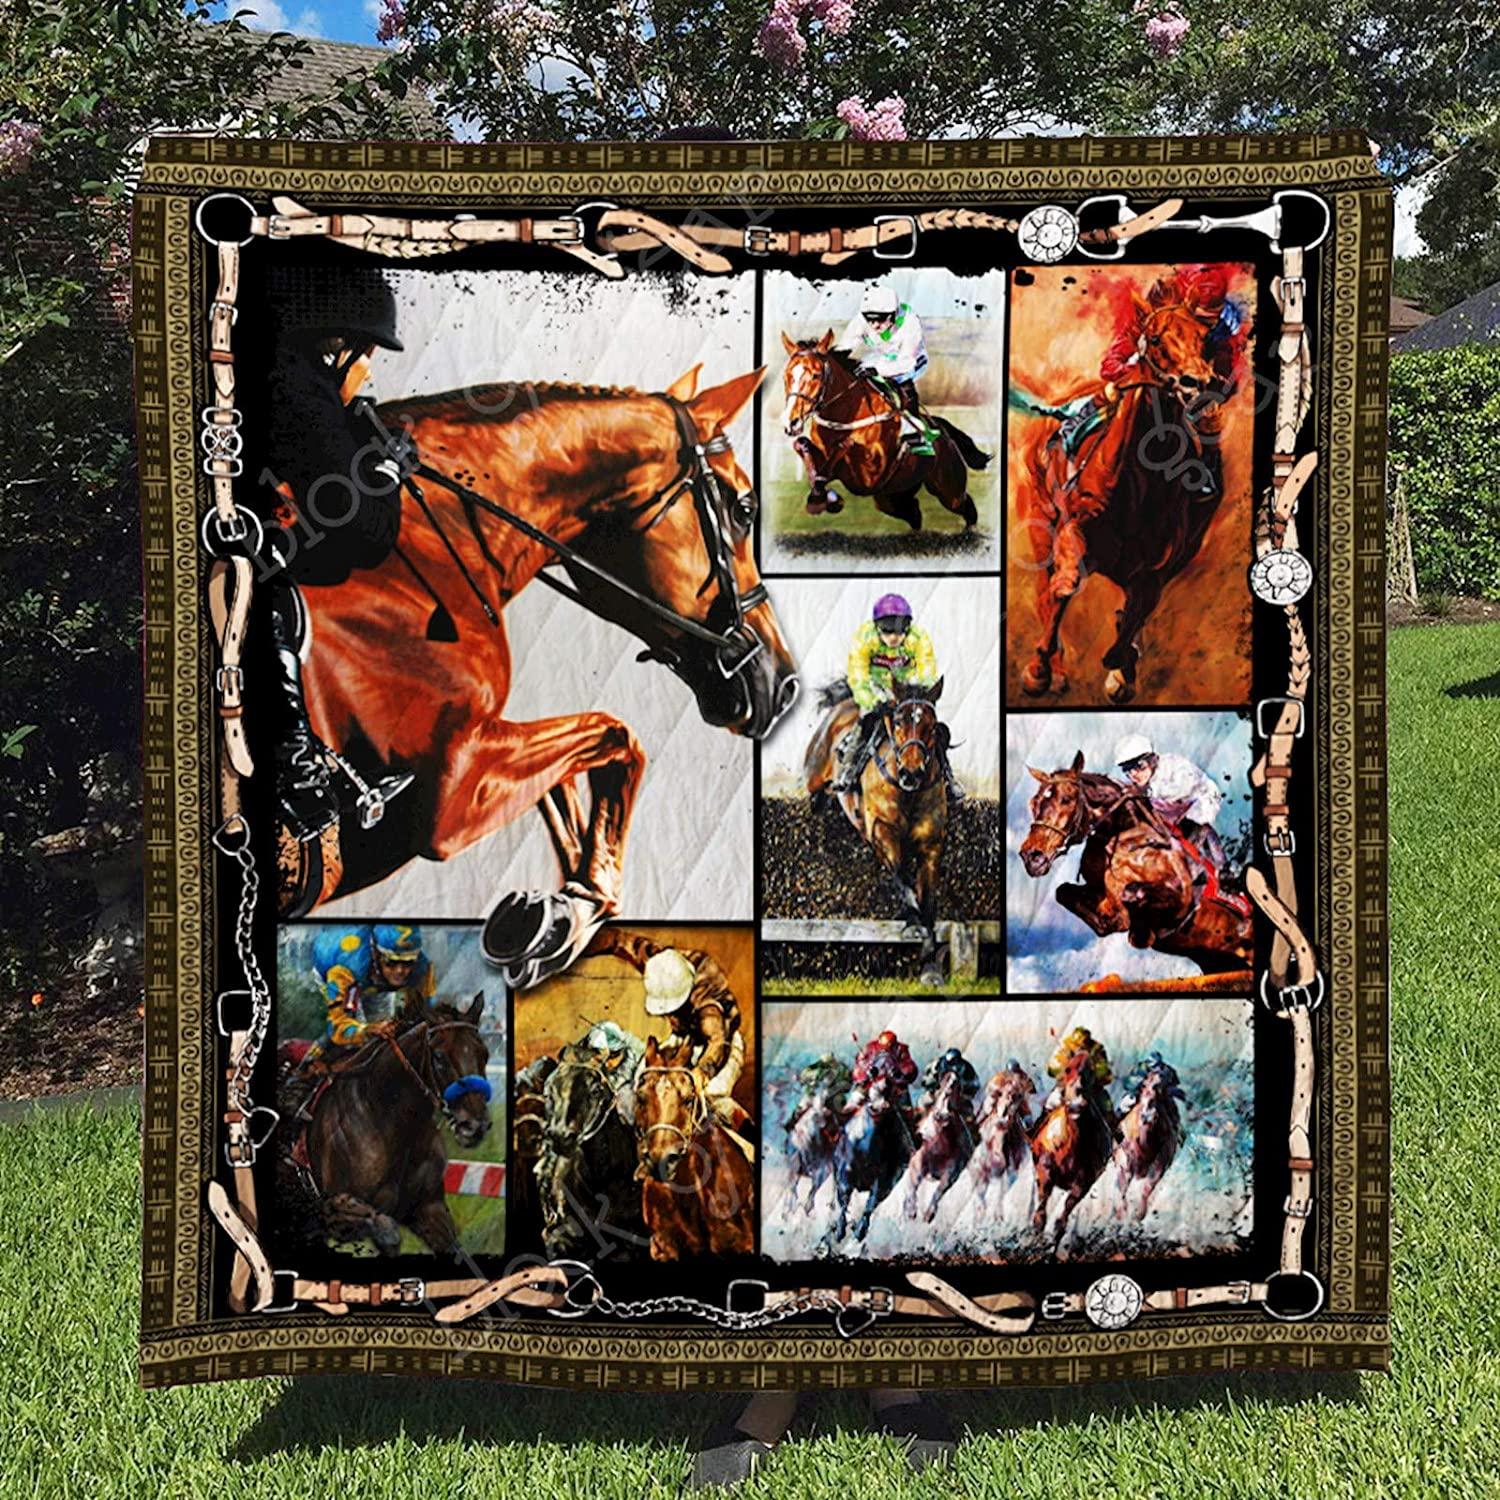 Horse Racing Quilt TH650, Twin All-Season Quilts Comforters with Reversible Cotton King Queen Twin Size - Best Decorative Quilts-Unique Quilted for Gifts